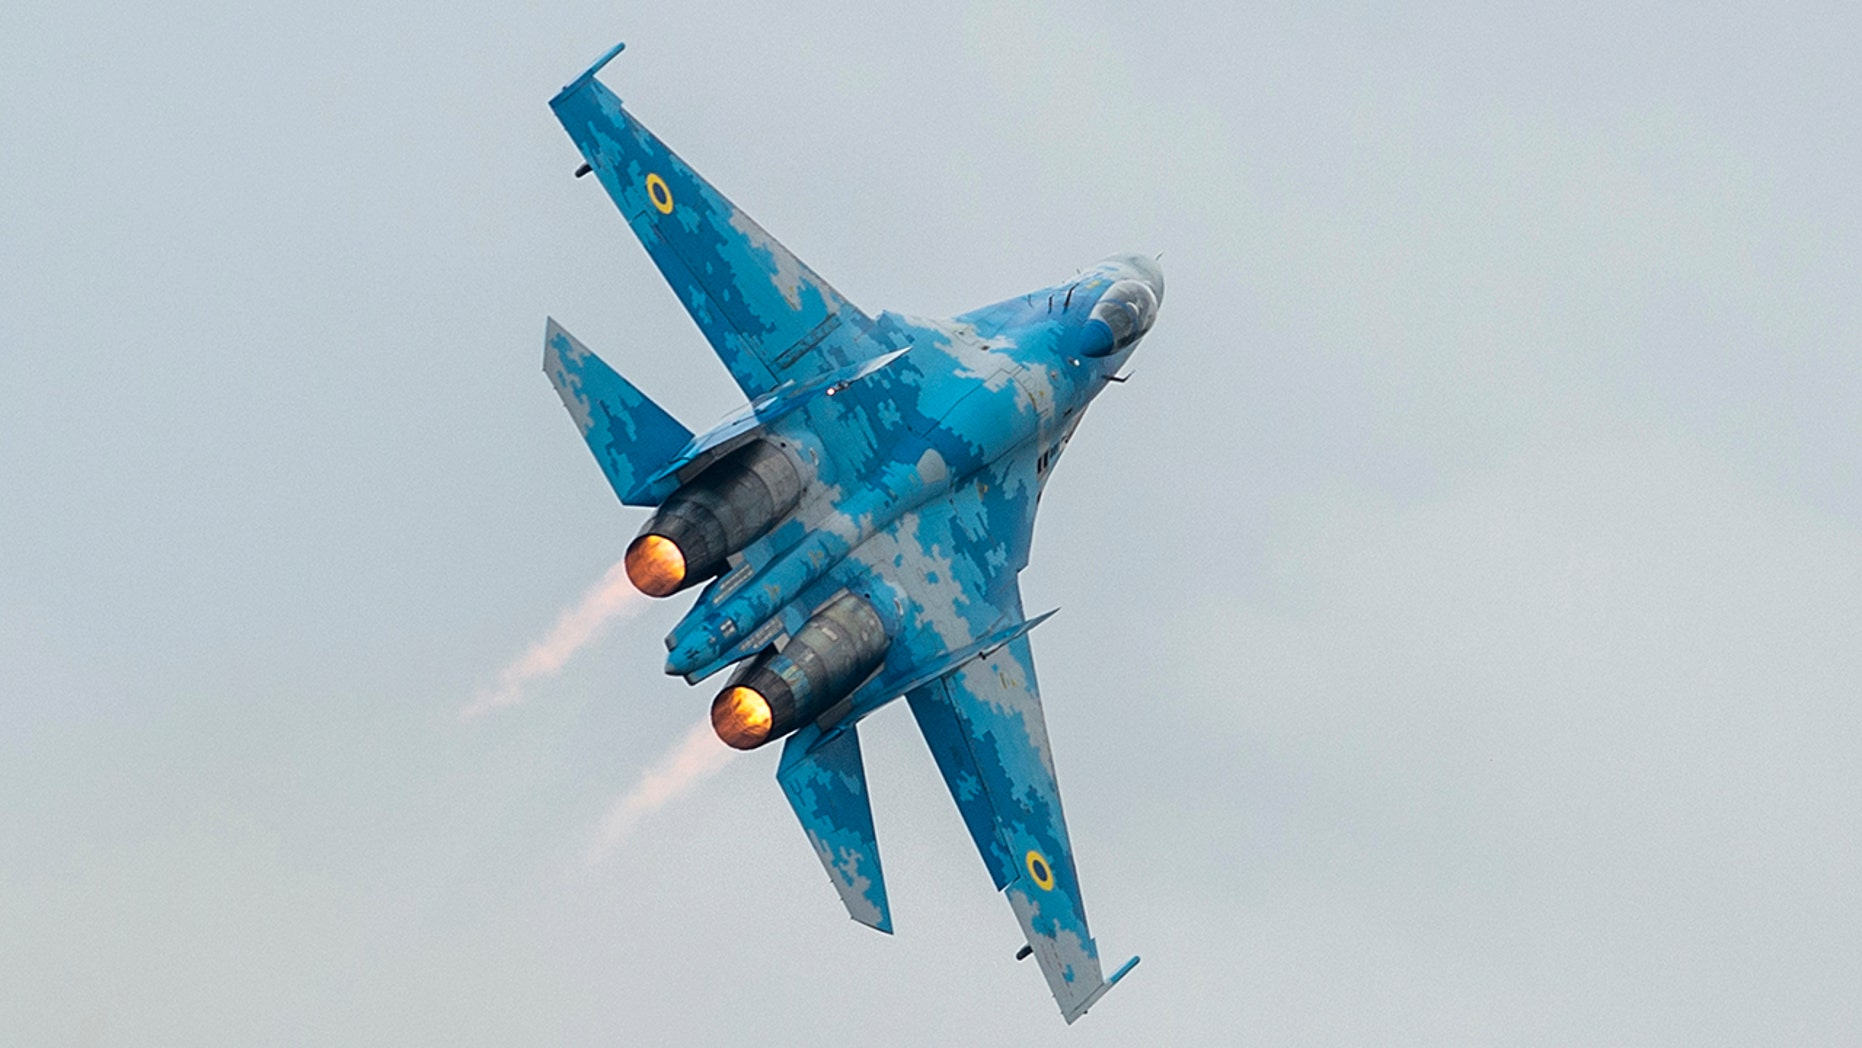 U.S. service member involved in Ukrainian Su-27 crash